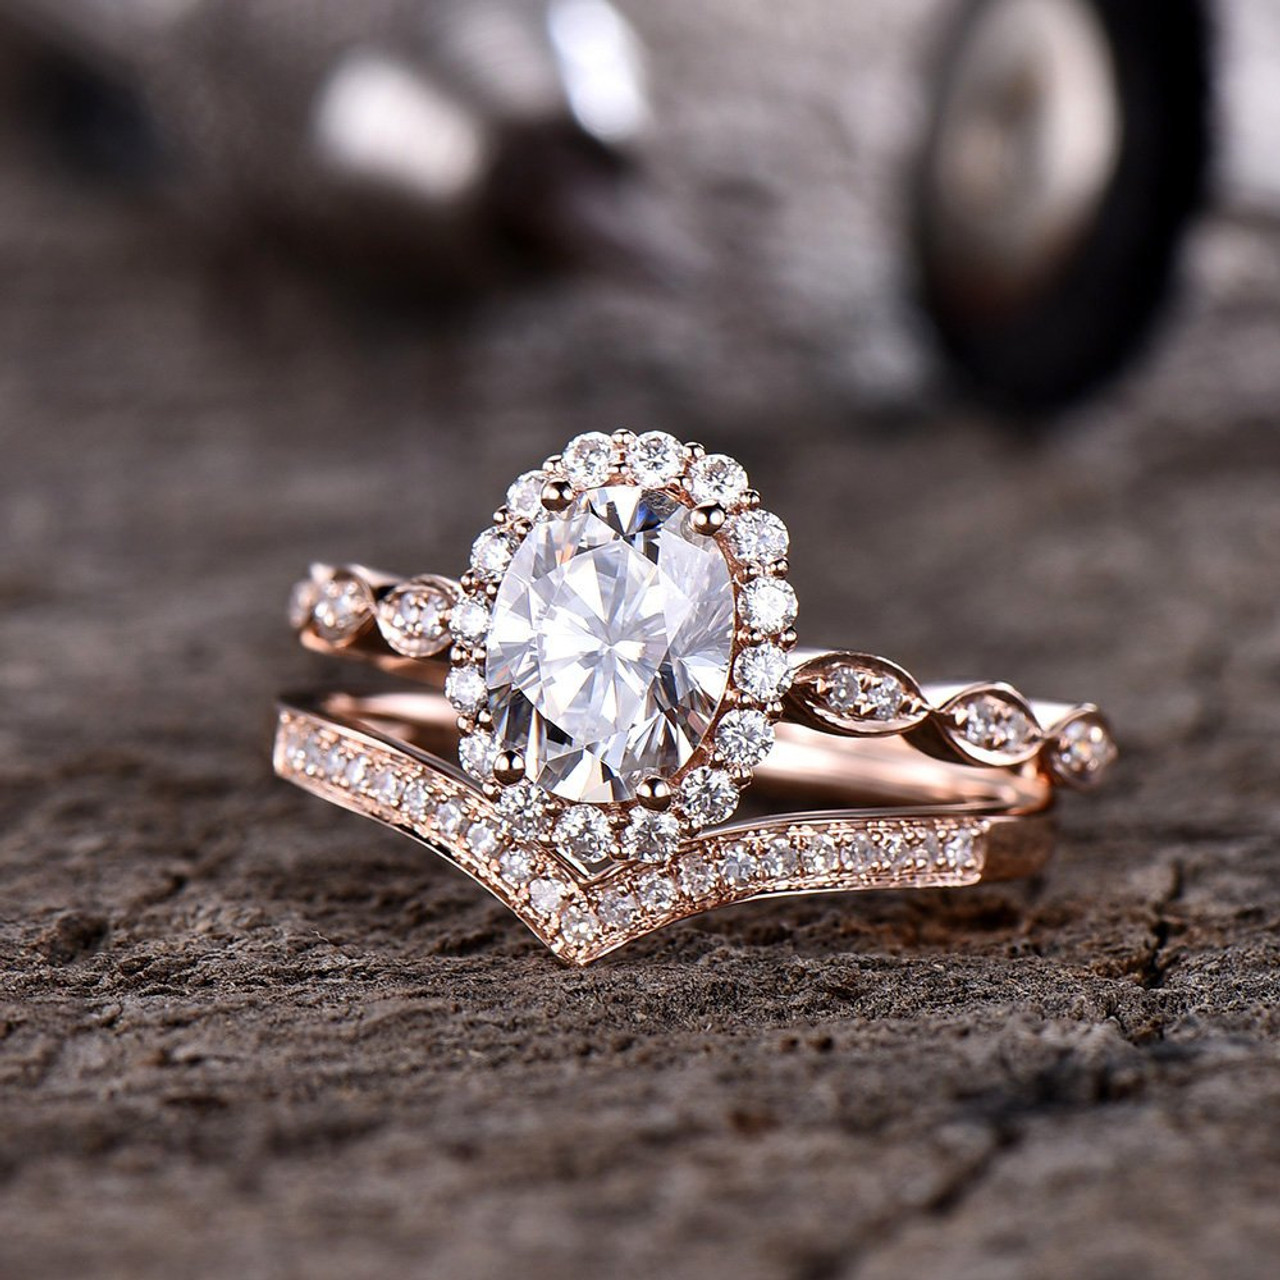 a70aef547c7 Forever One Moissanite Engagement Ring Set Art Deco Wedding Ring Vintage  Flower Halo Marquise Design Curve V Matching Band 14K Rose Gold